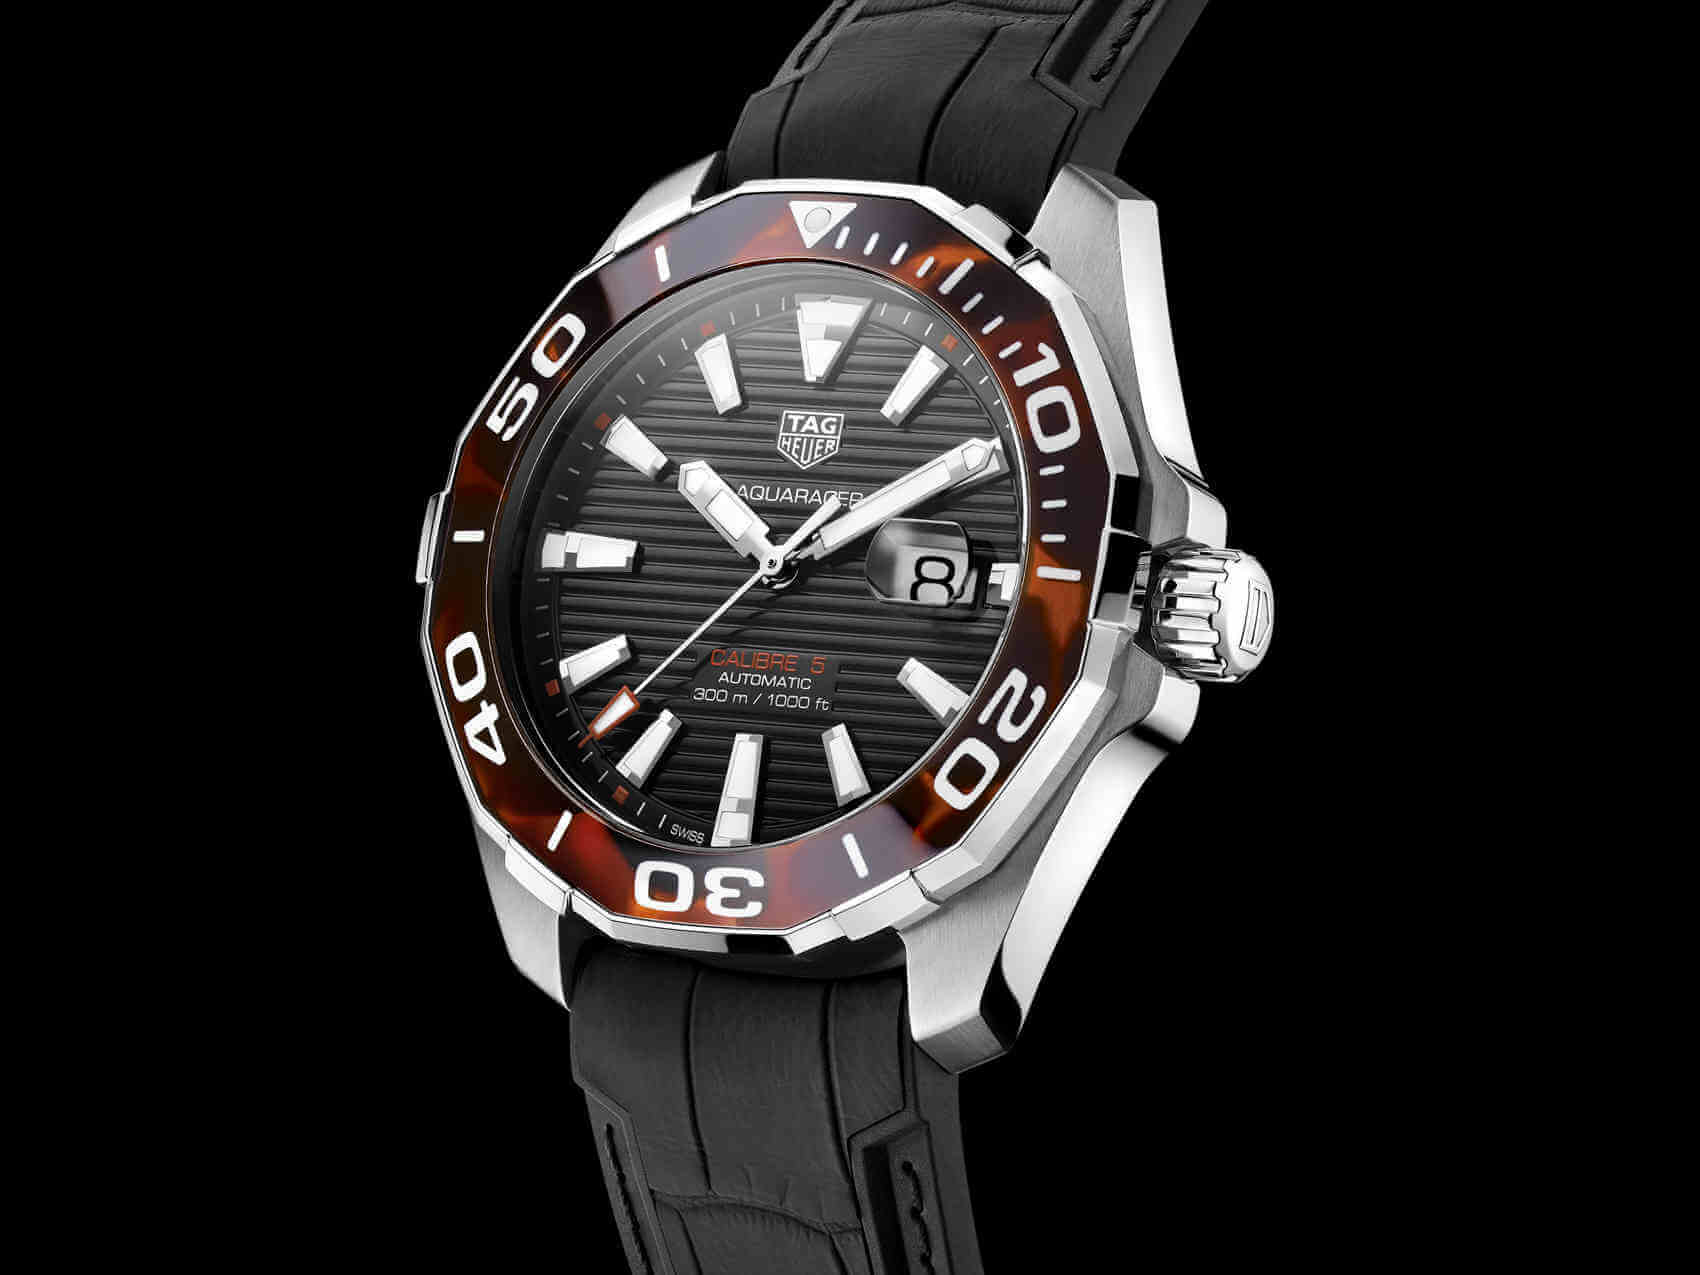 Tag Heuer Aquaracer Tortoise Shell front lado 1